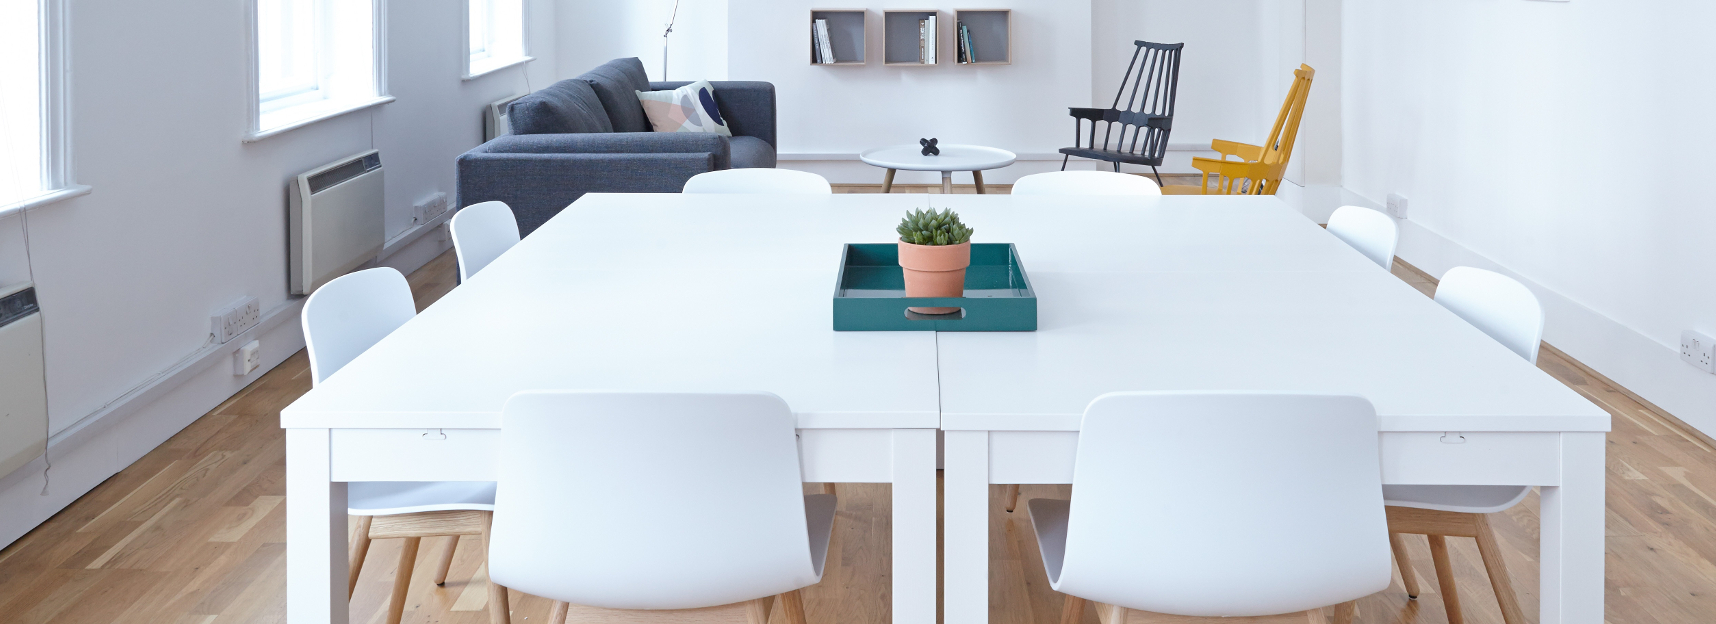 Kitchen-Table-Living-Room-Online-Mortgage-Home-Loan